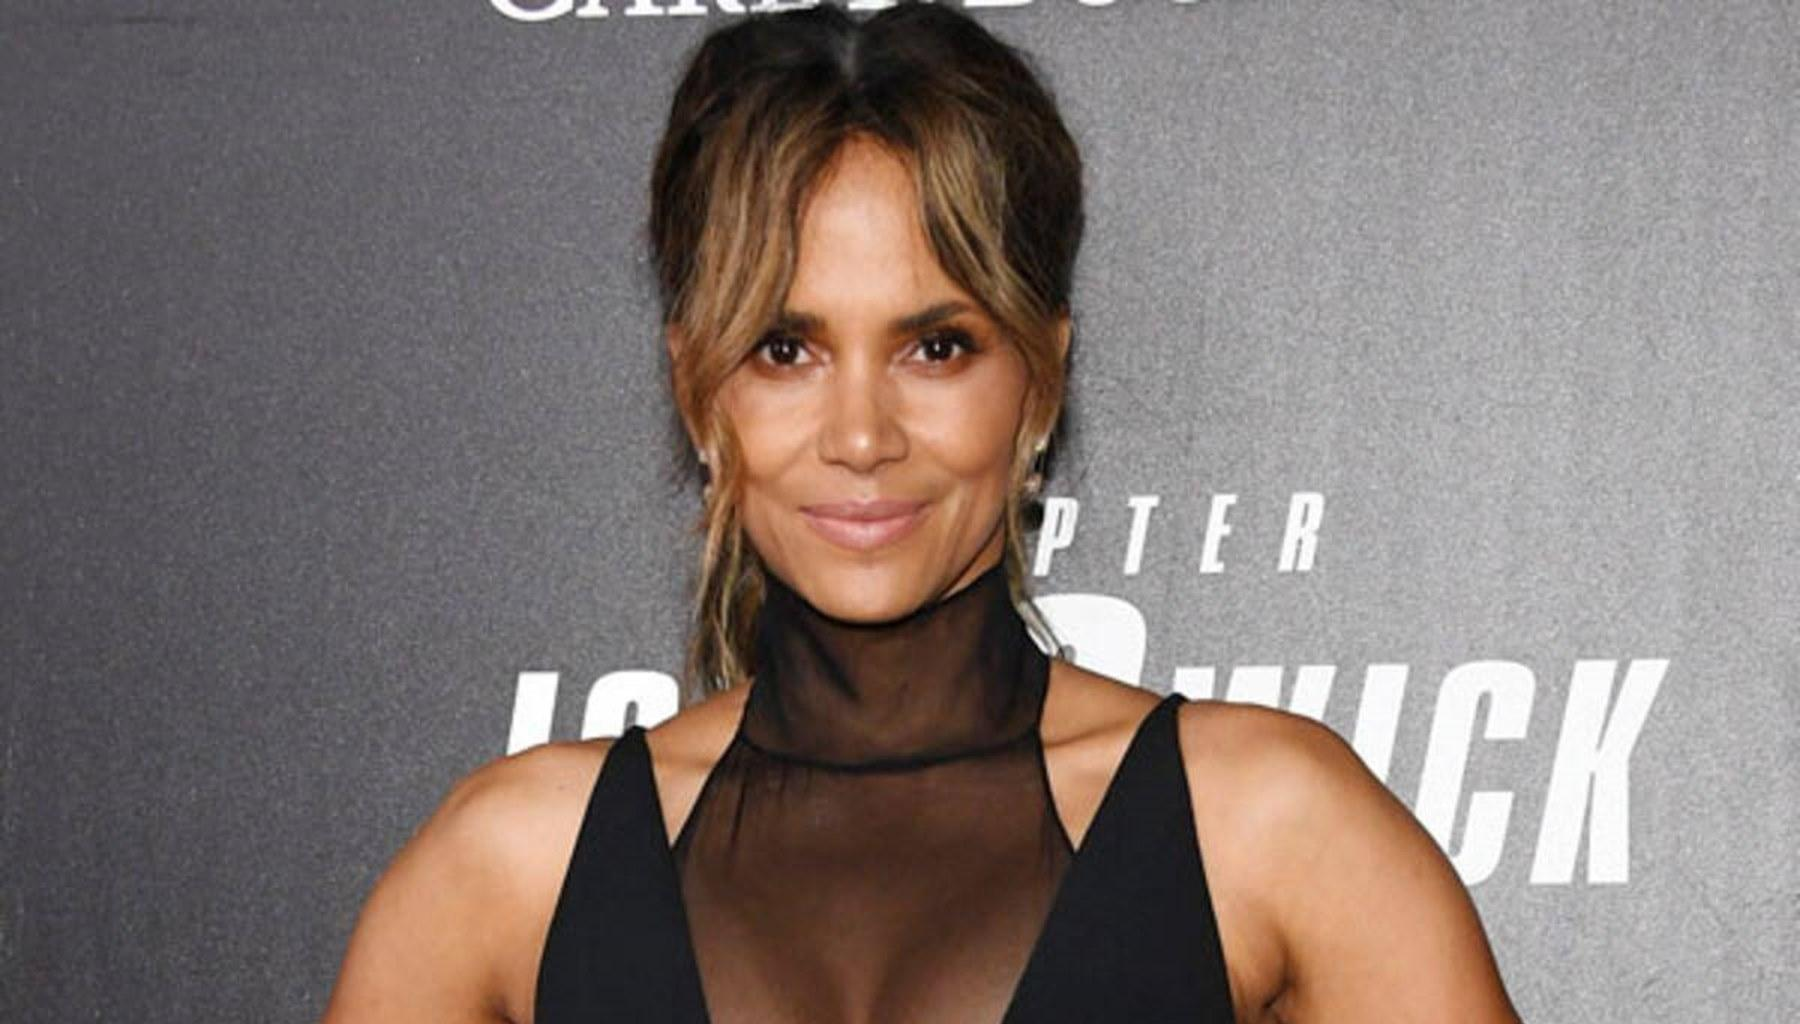 Halle Berry Is Unbelievably Flexible And Inspirational In New Photo As She Takes Fans On A Real Journey